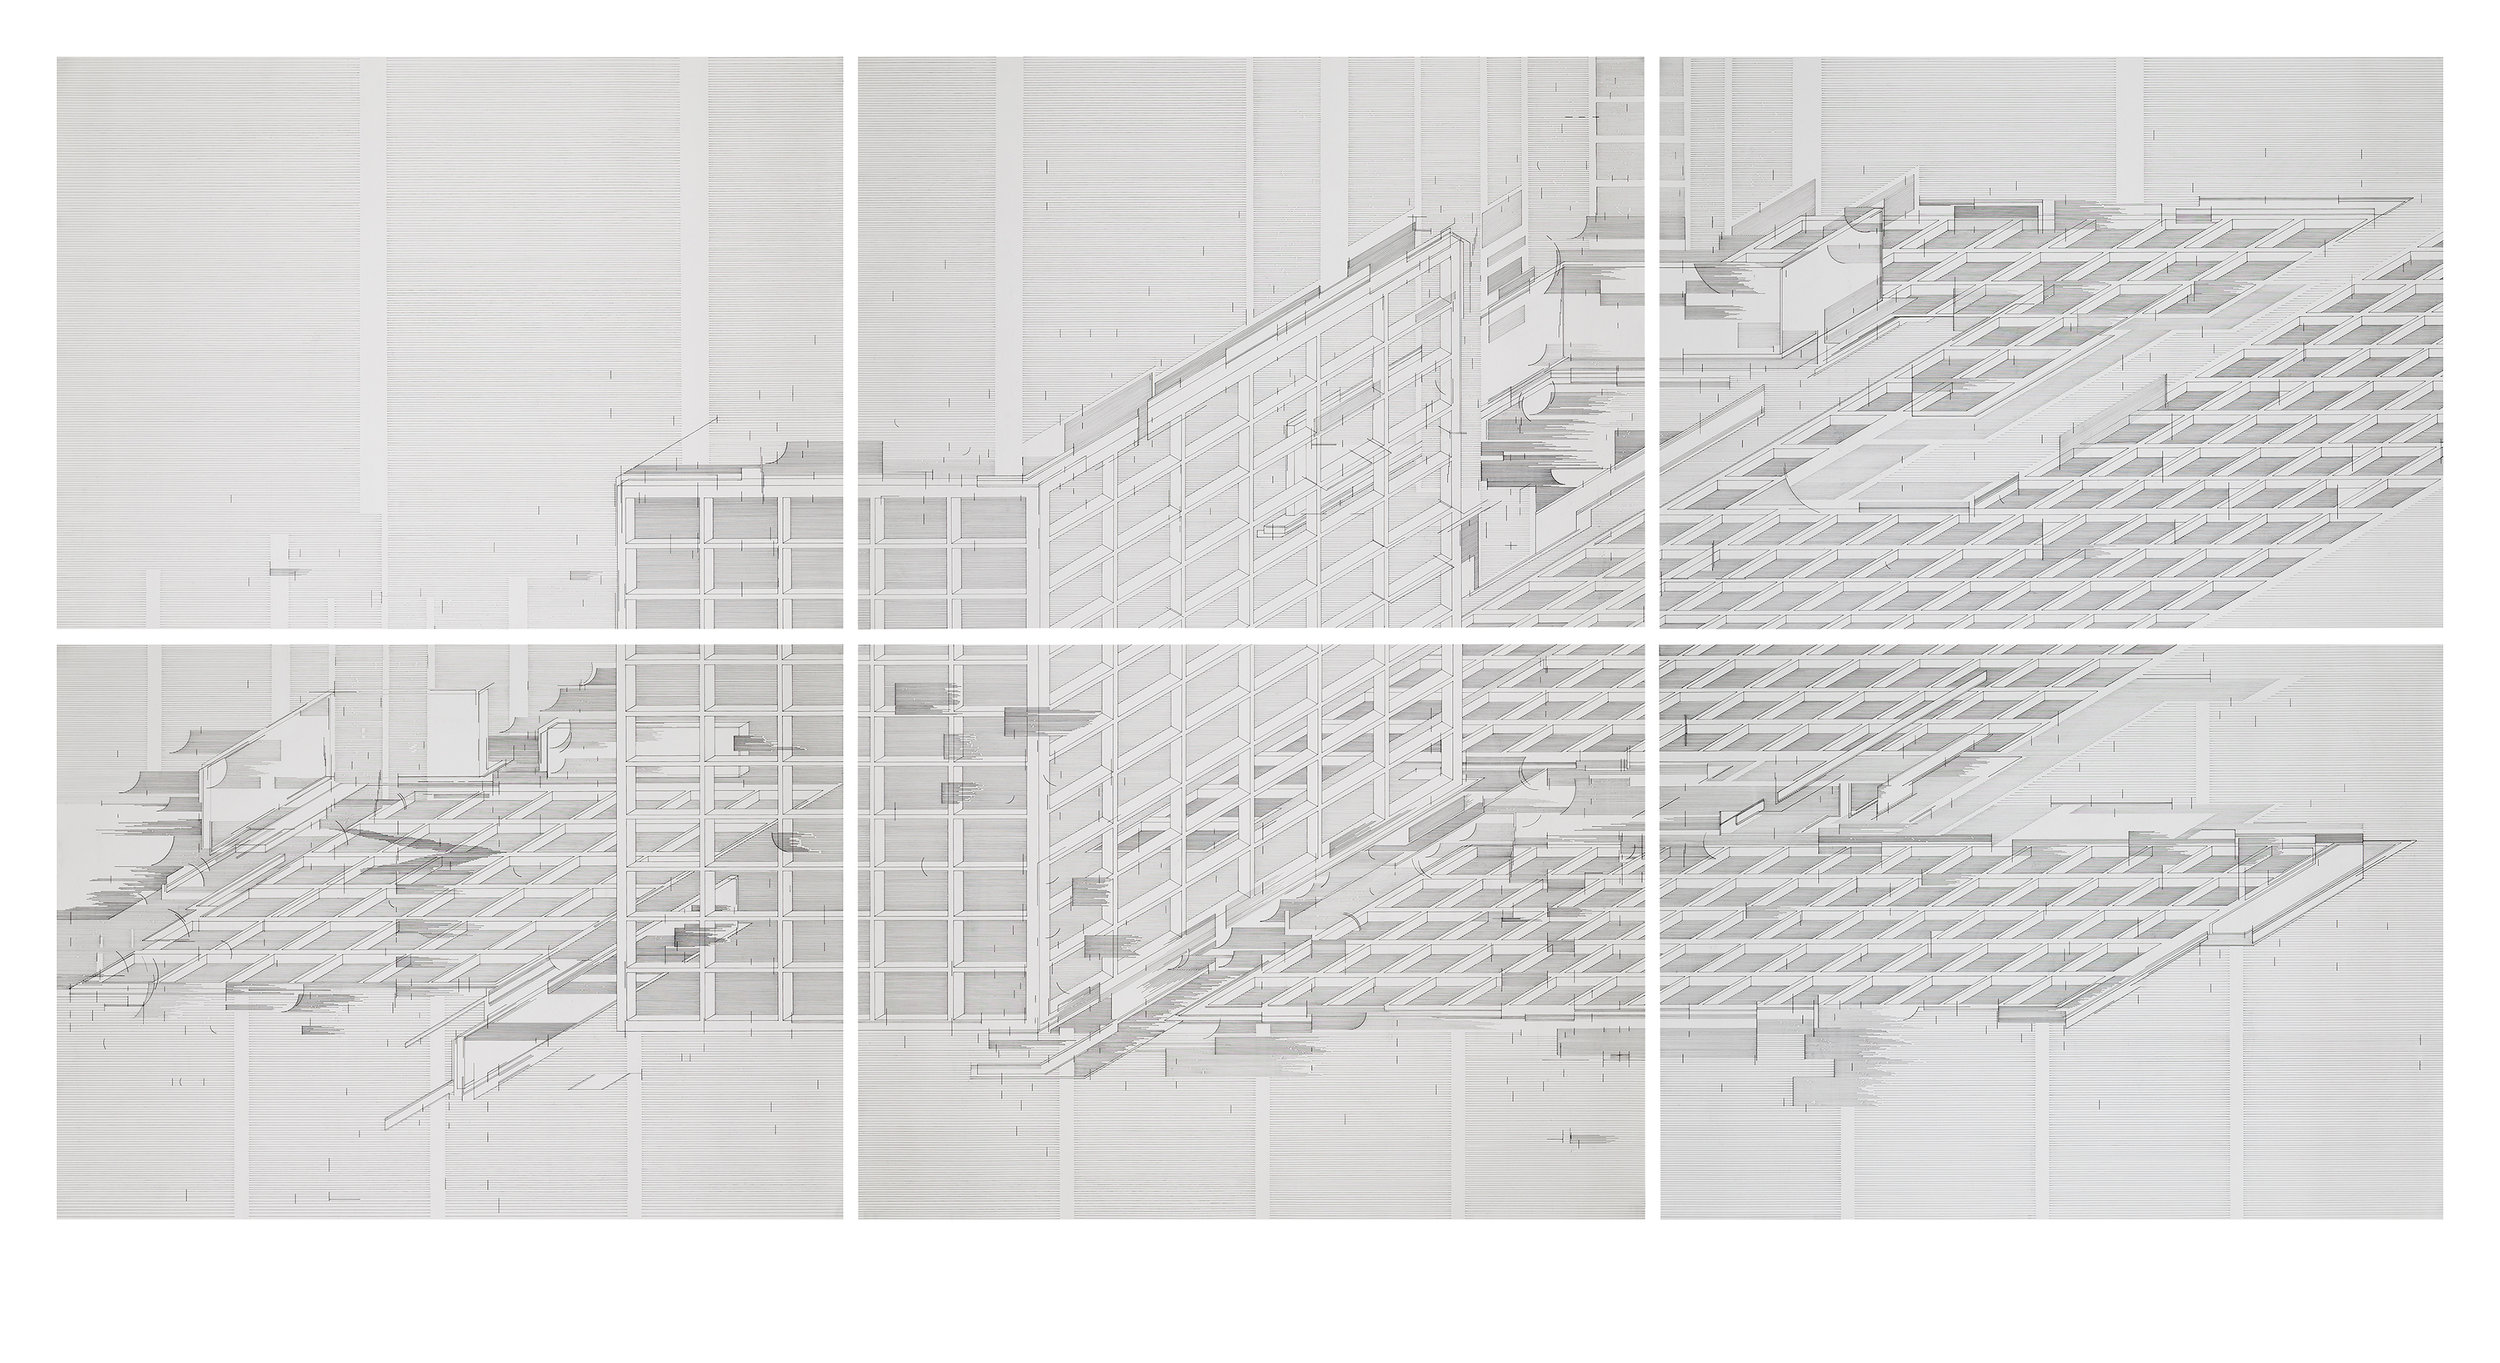 Seher Shah,  Flatlands (corner) , 2016, 6-panel ink on paper, 31 x 43 in (79 x 109 cm) each panel, 62 x 129 in (157 x 327 cm) full dimension